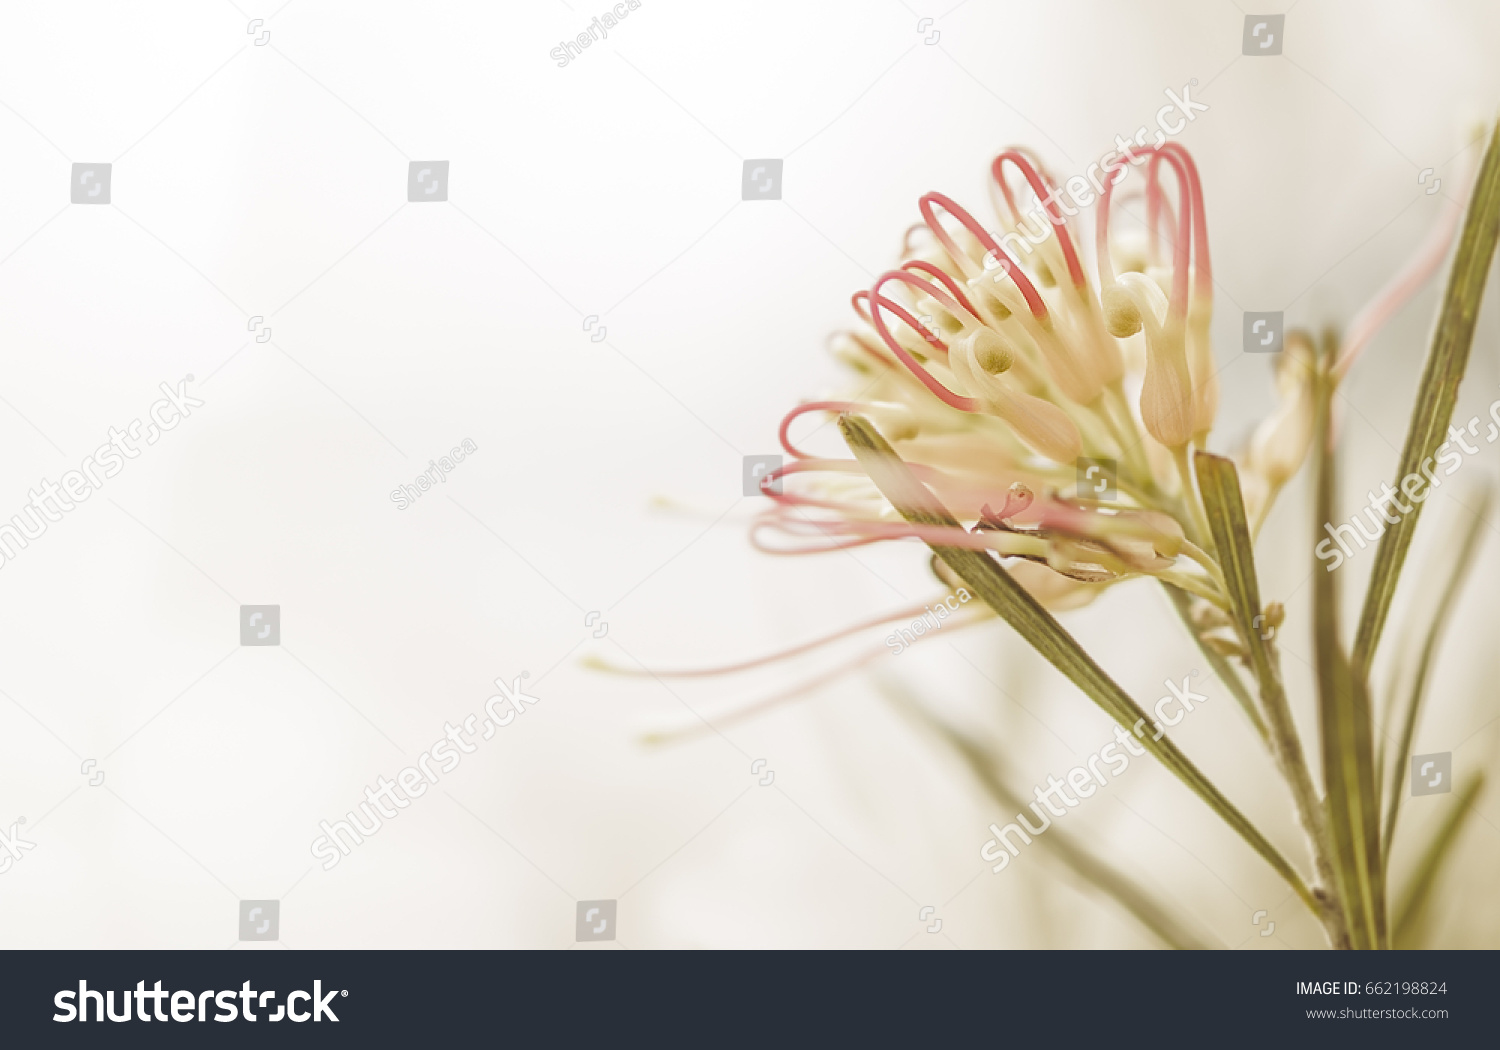 Sympathy card background australian grevillea flower stock photo sympathy card background with australian grevillea flower in soft pastel colors and copy space for kristyandbryce Images